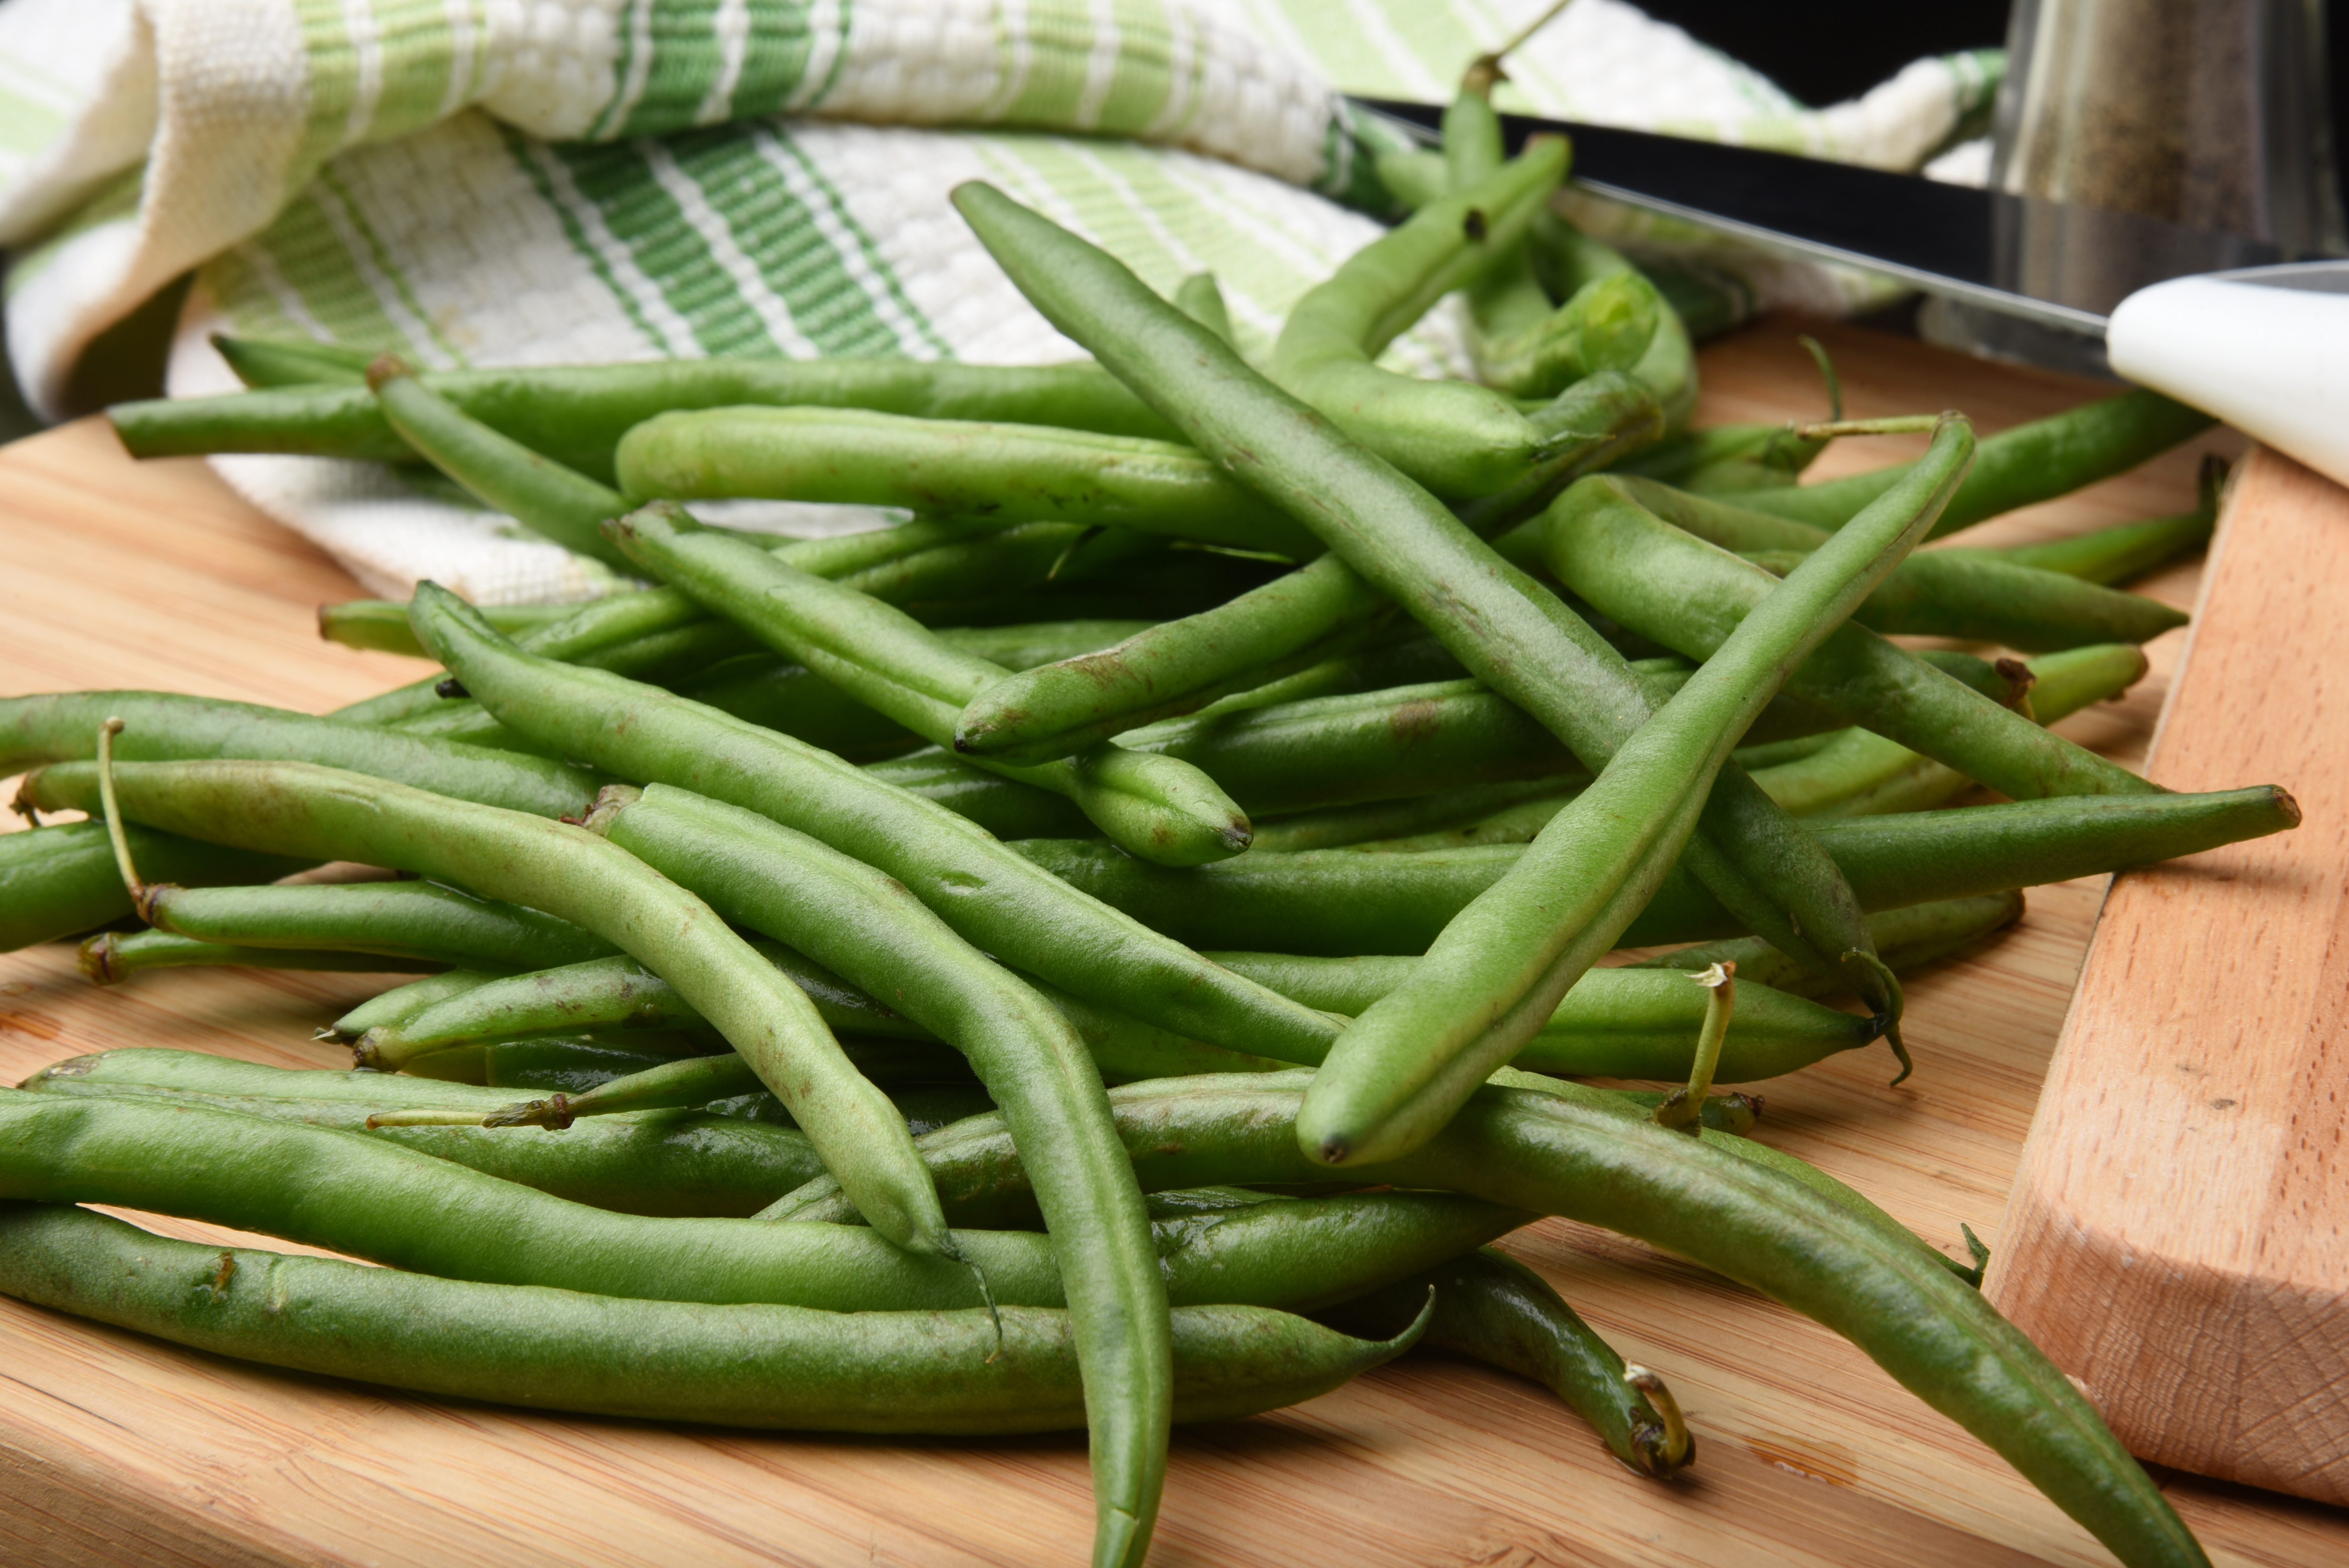 Roasted Green Beans: Quick, Easy and Delicious - LottaVeg